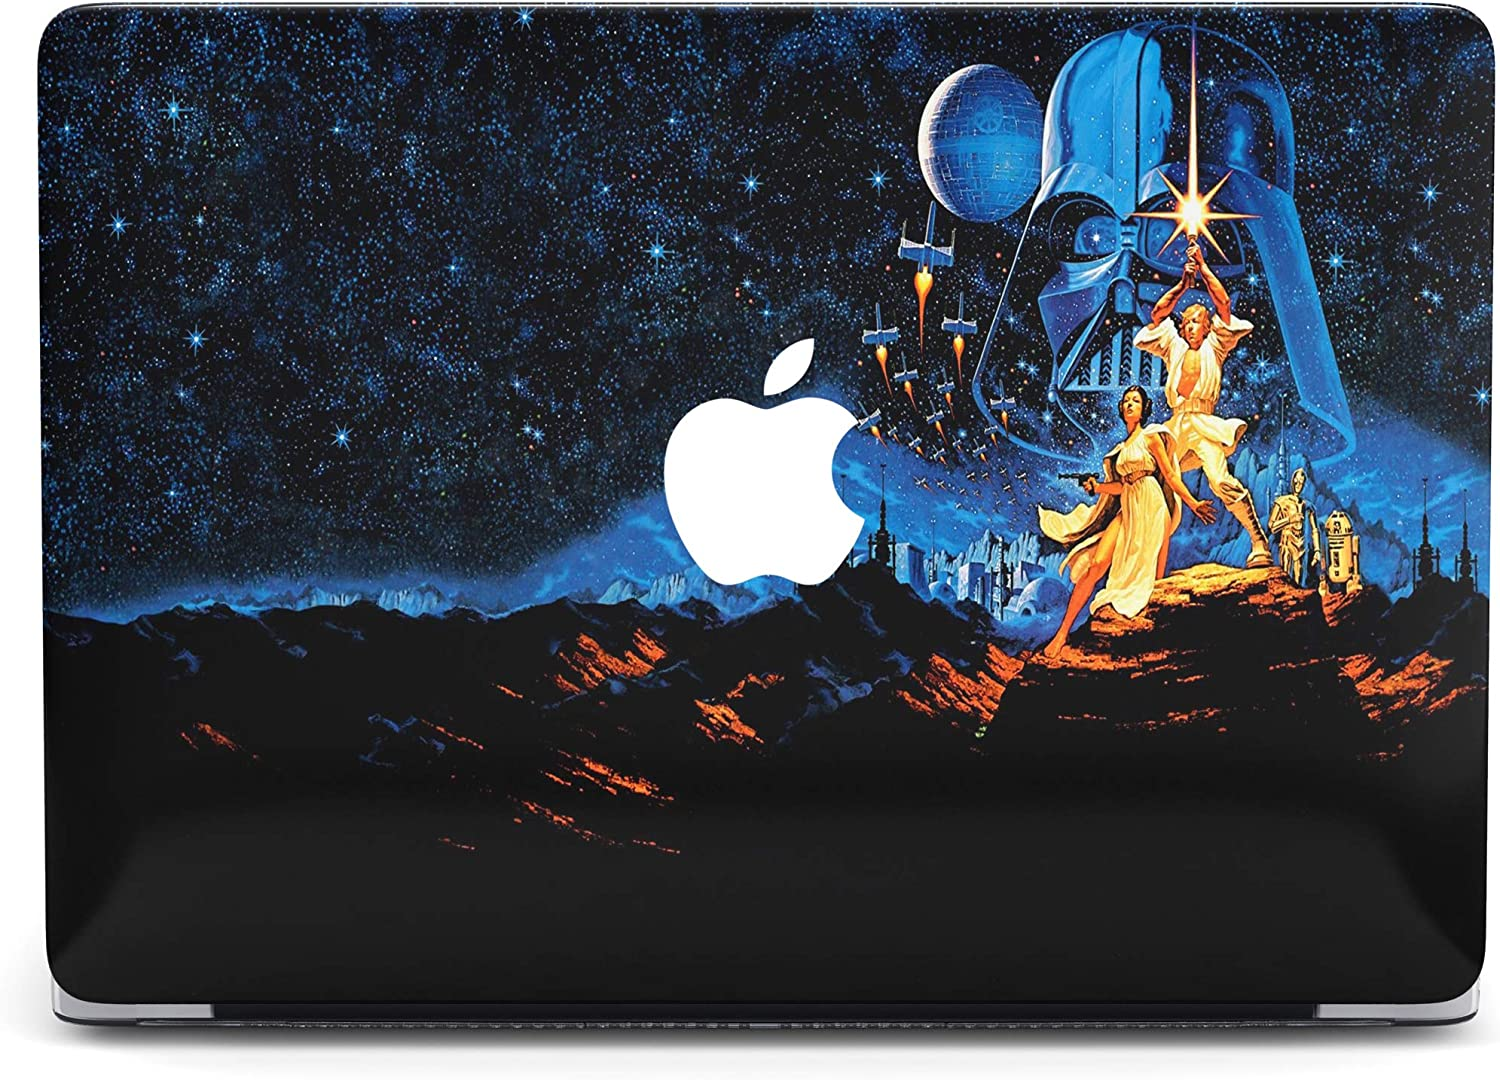 Star Wars Protective case Compatible with Apple MacBook Mac Air Pro 13 12 15 16 13.3 inch Retina Cover SN16 (Air 13